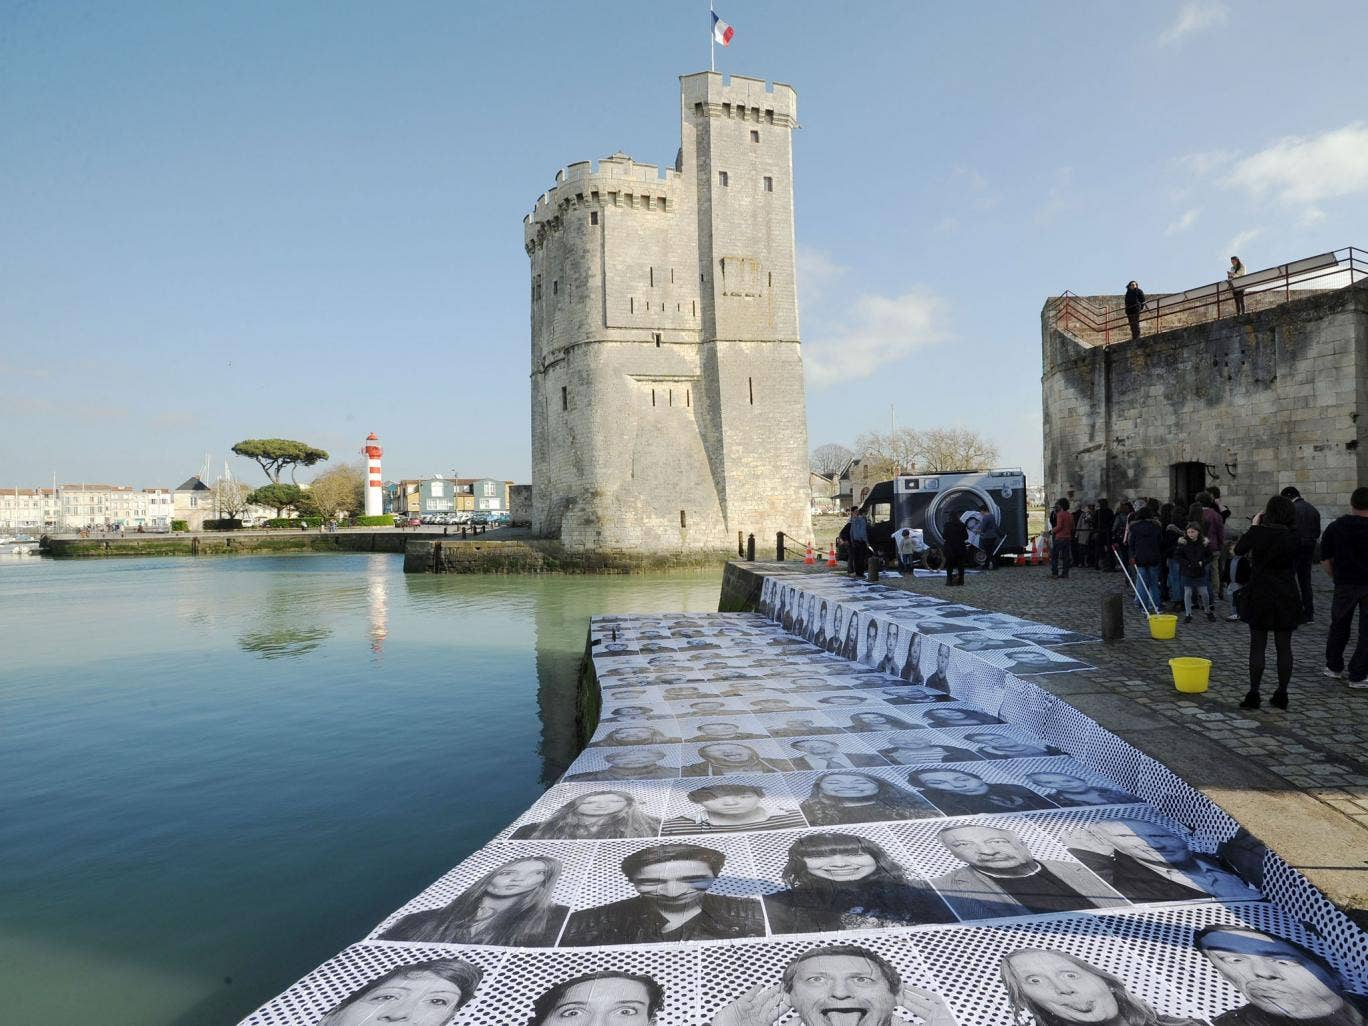 The portraits are also displayed on a harbour's embankment